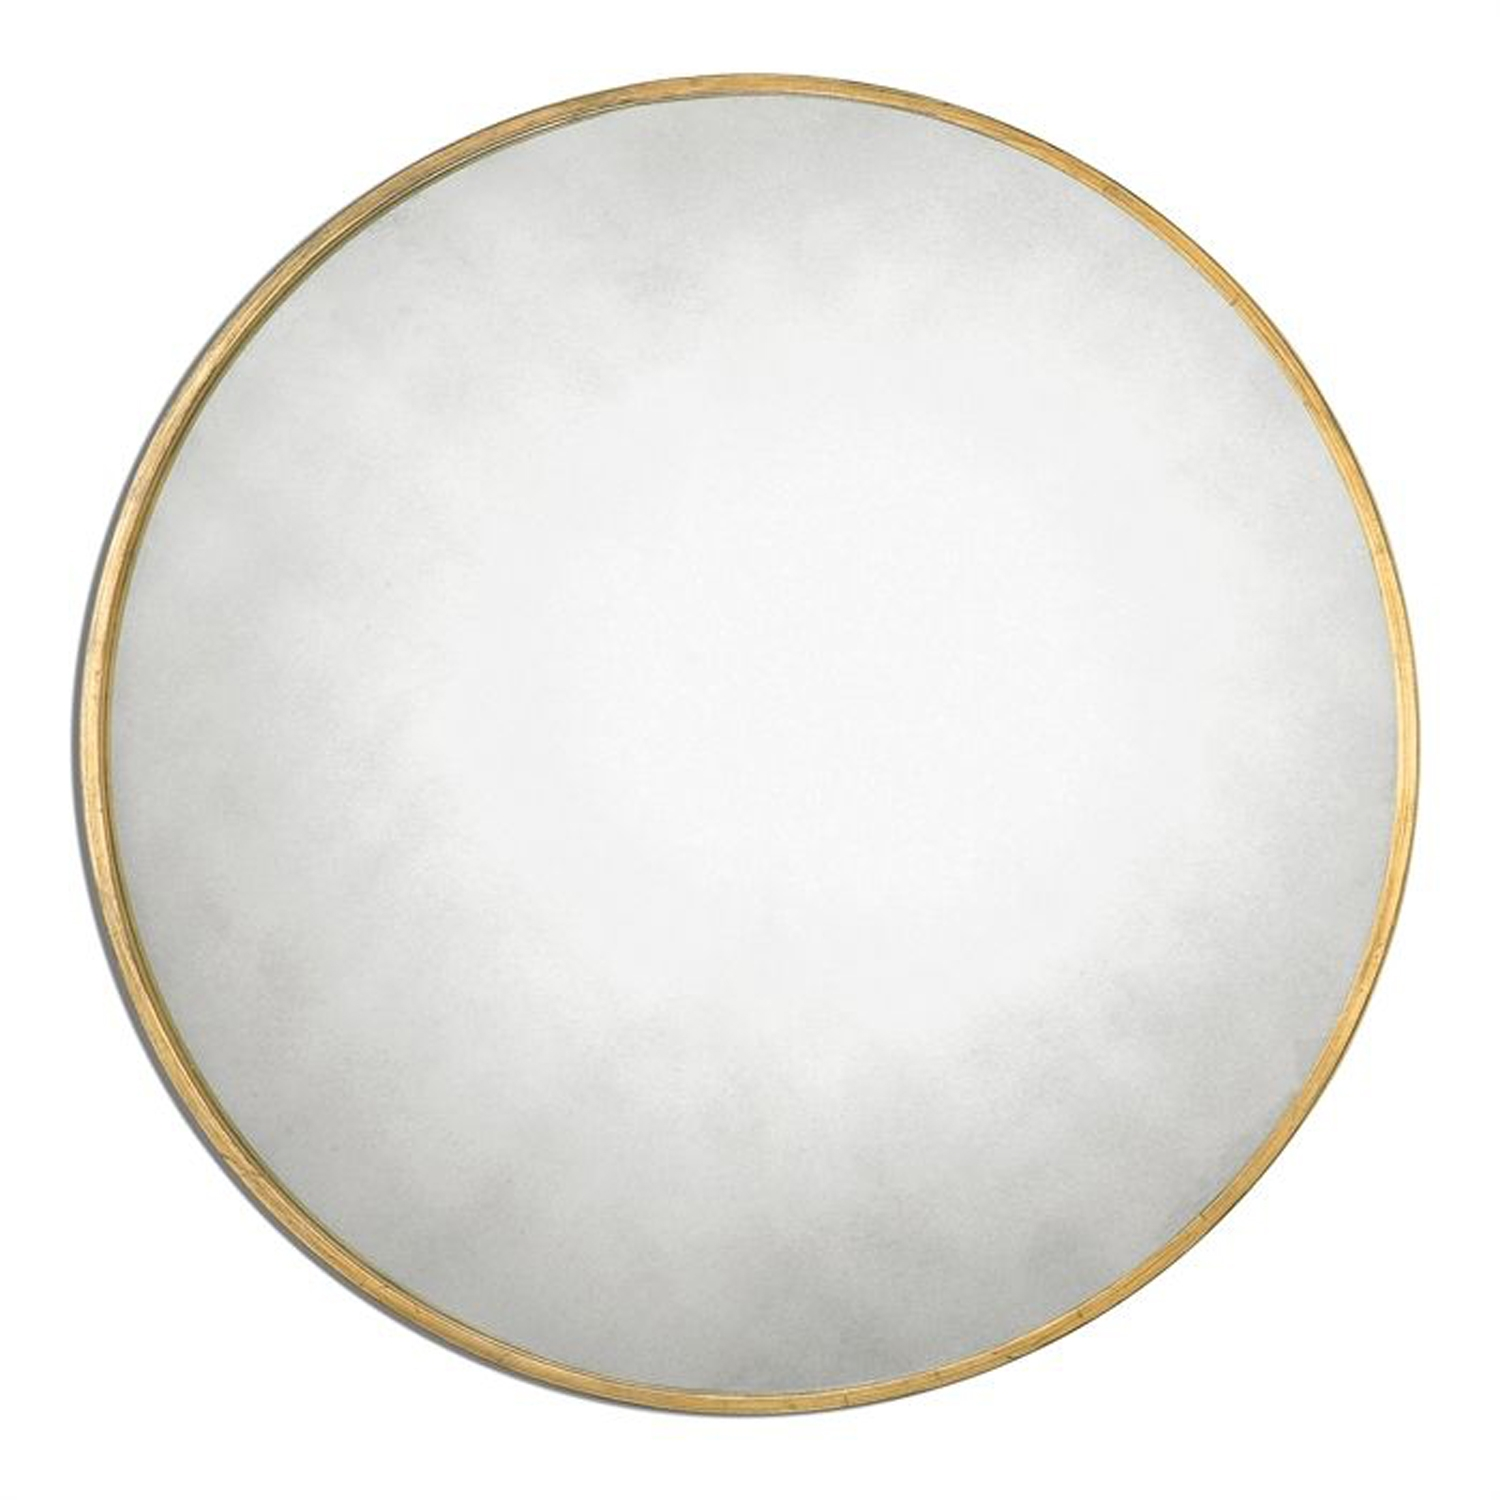 Round Mirrors For Sale 15 Best Large Round Mirrors For Sale Mirror Ideas